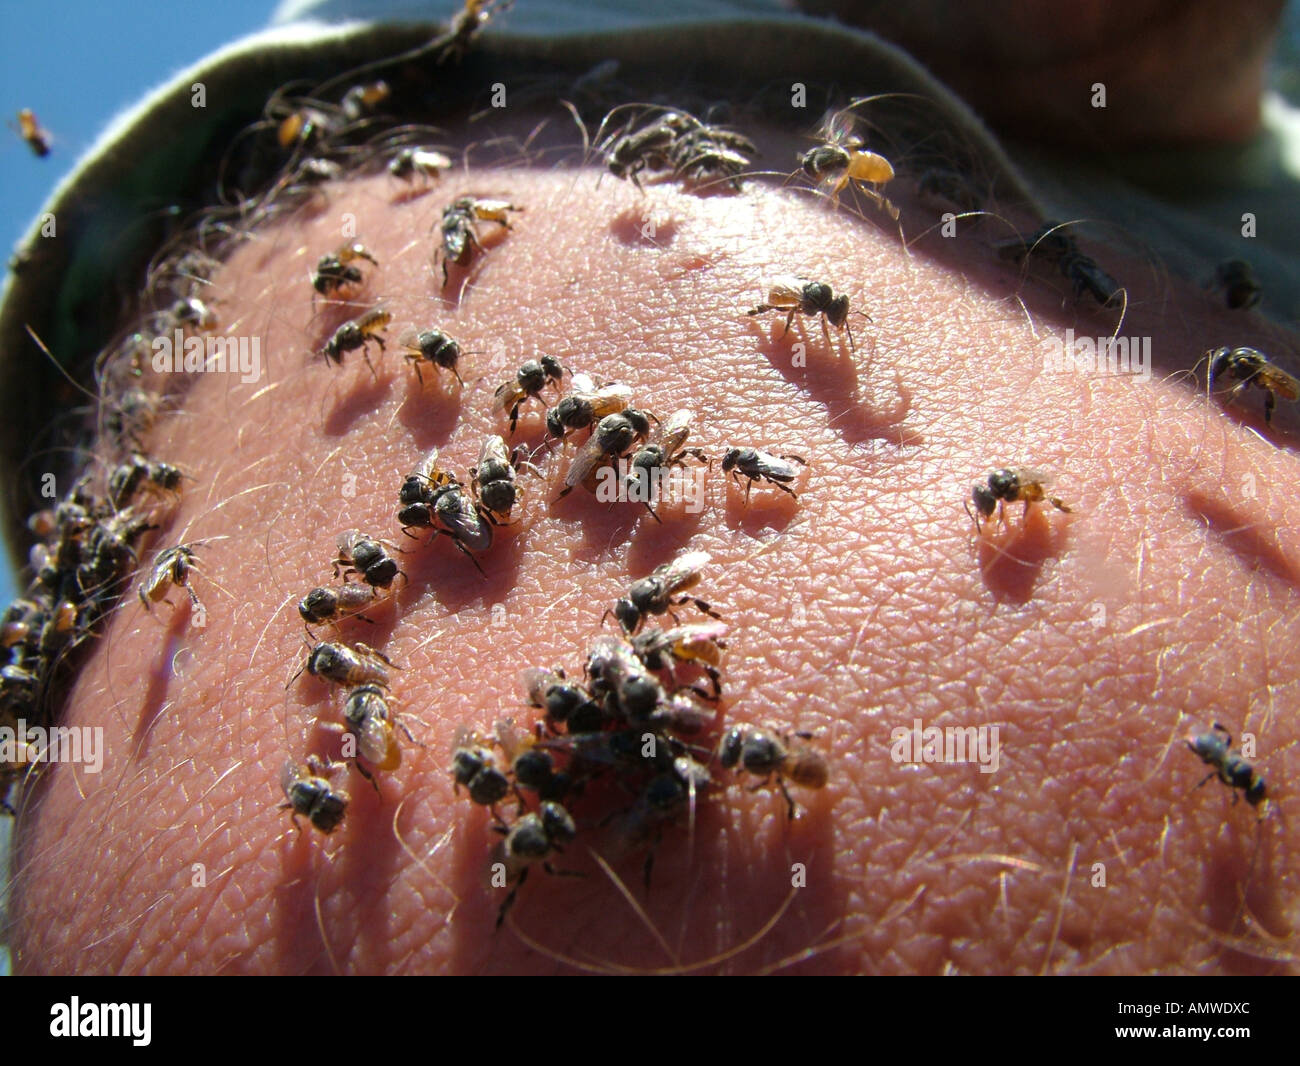 Countless little bees assemble at the skin for collecting minerals from the human sweat - Stock Image